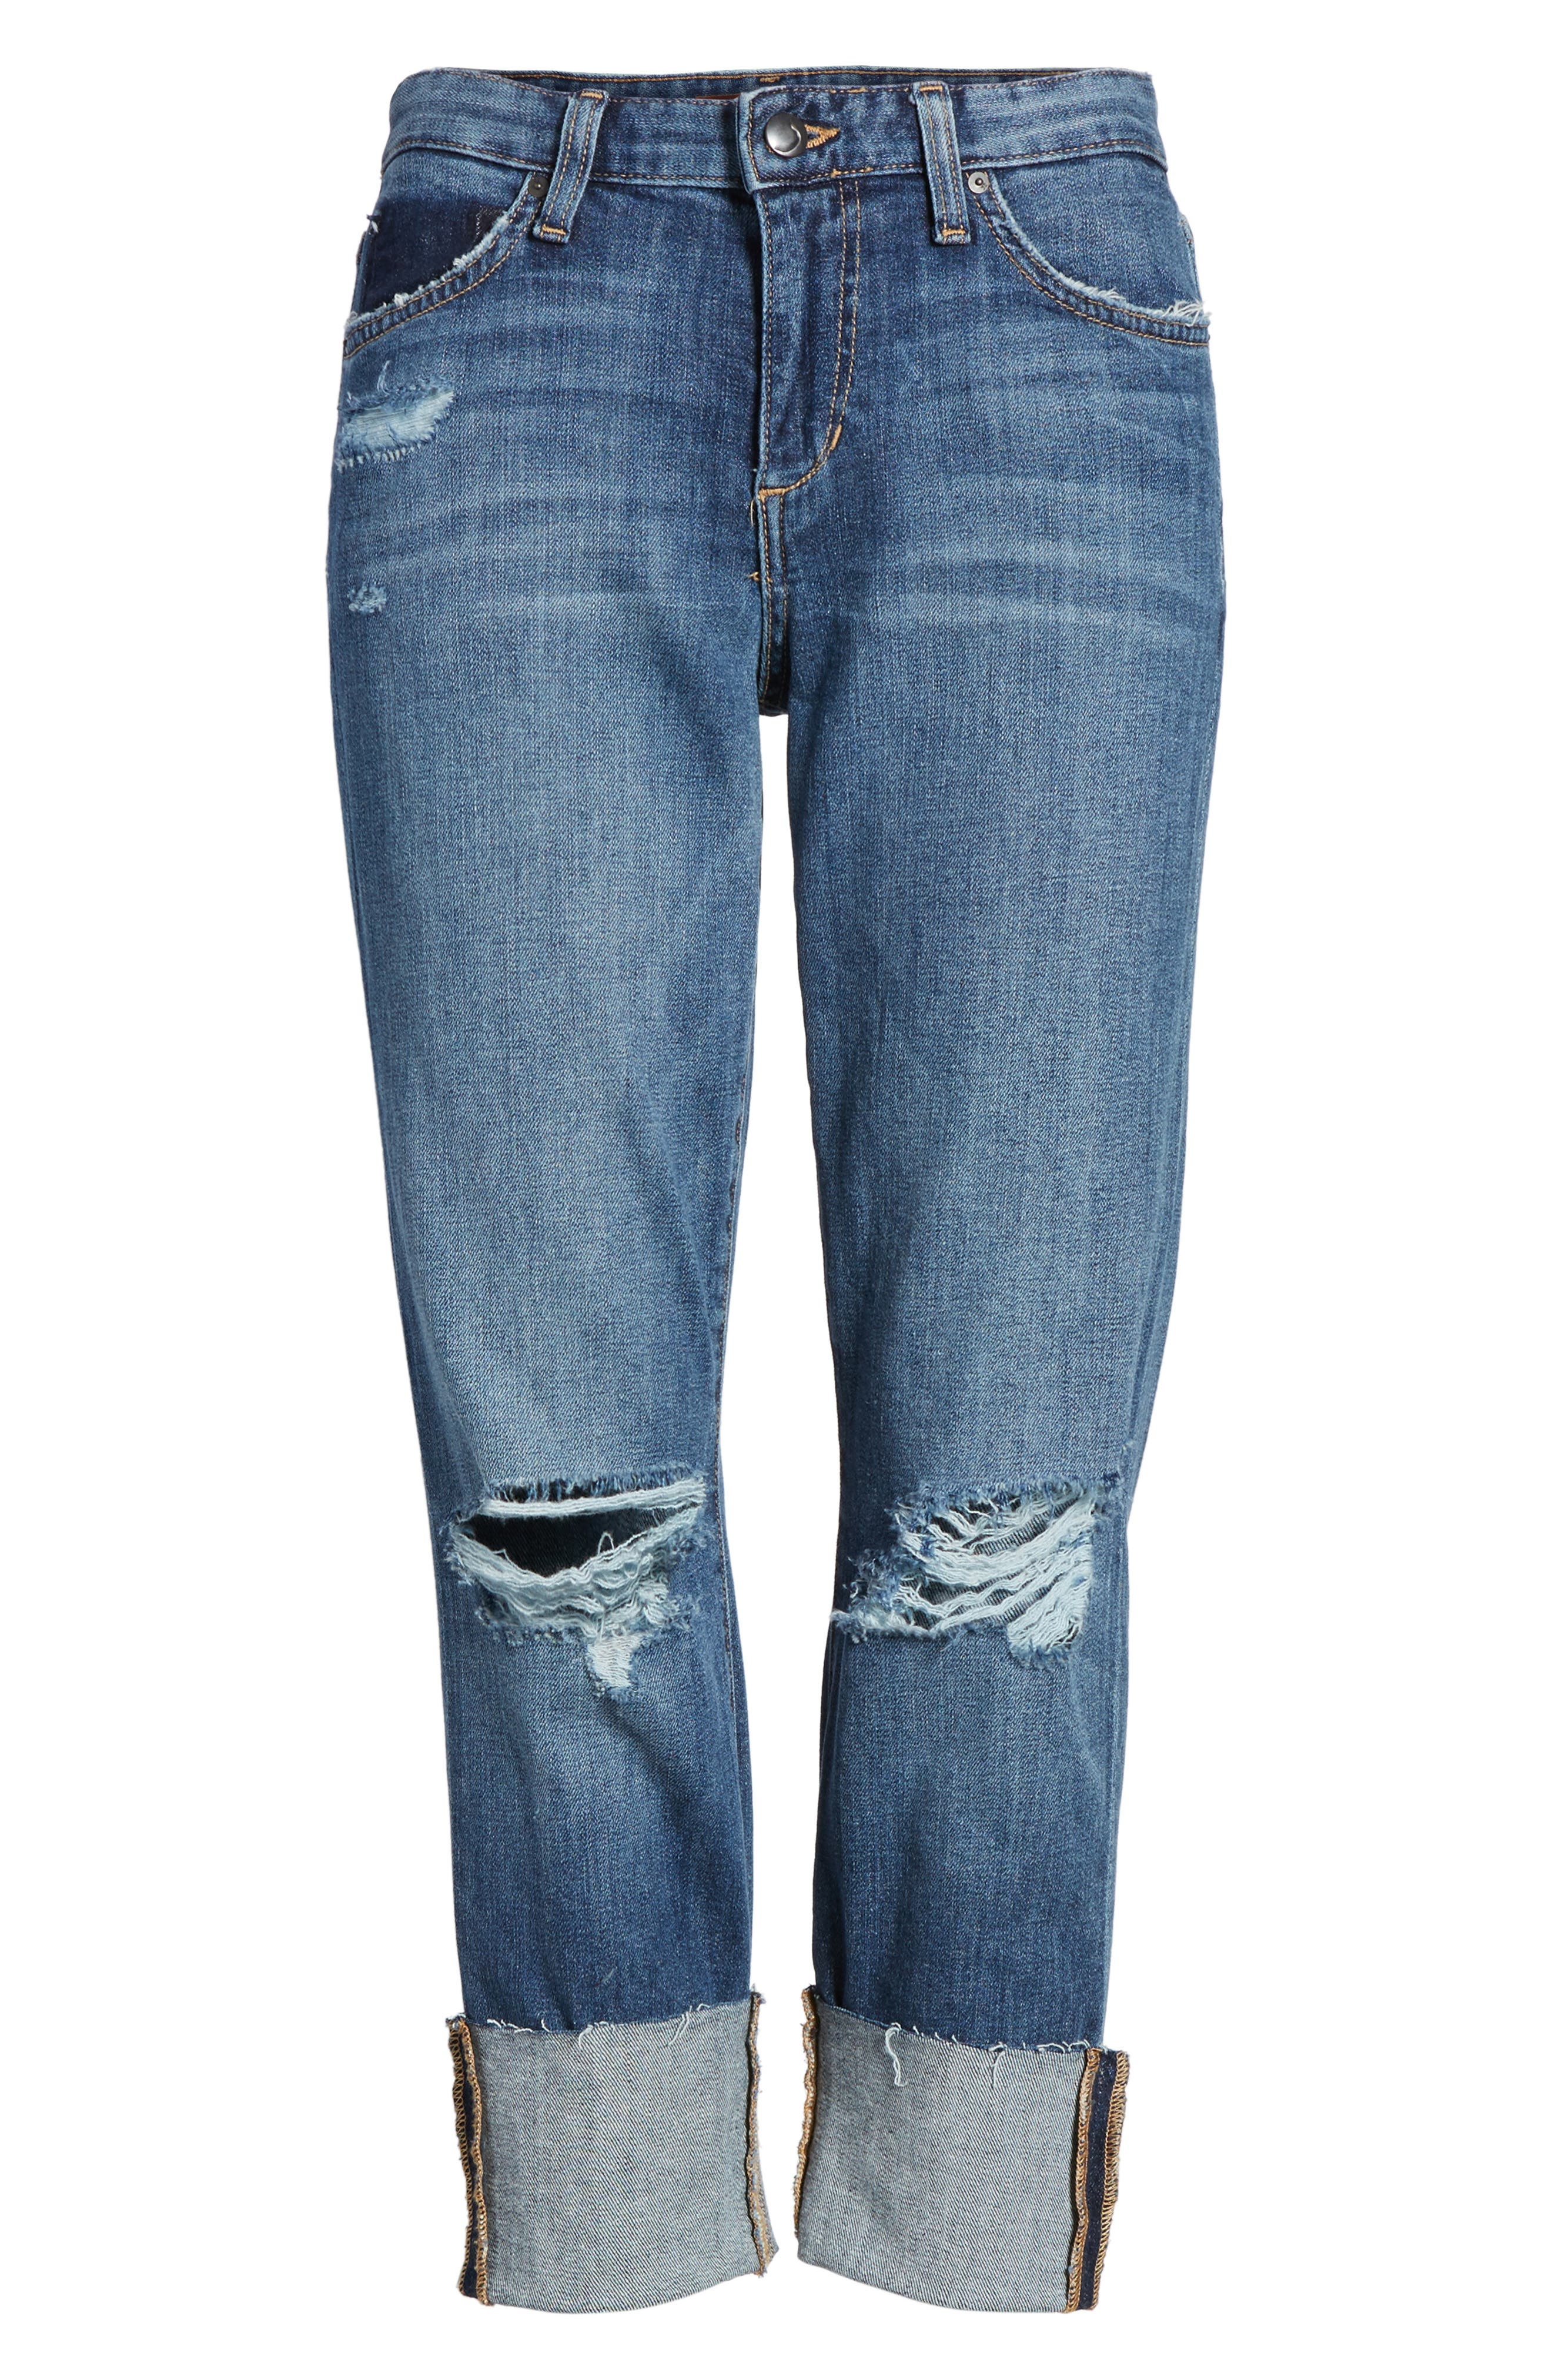 Smith Crop Boyfriend Jeans,                             Alternate thumbnail 6, color,                             400